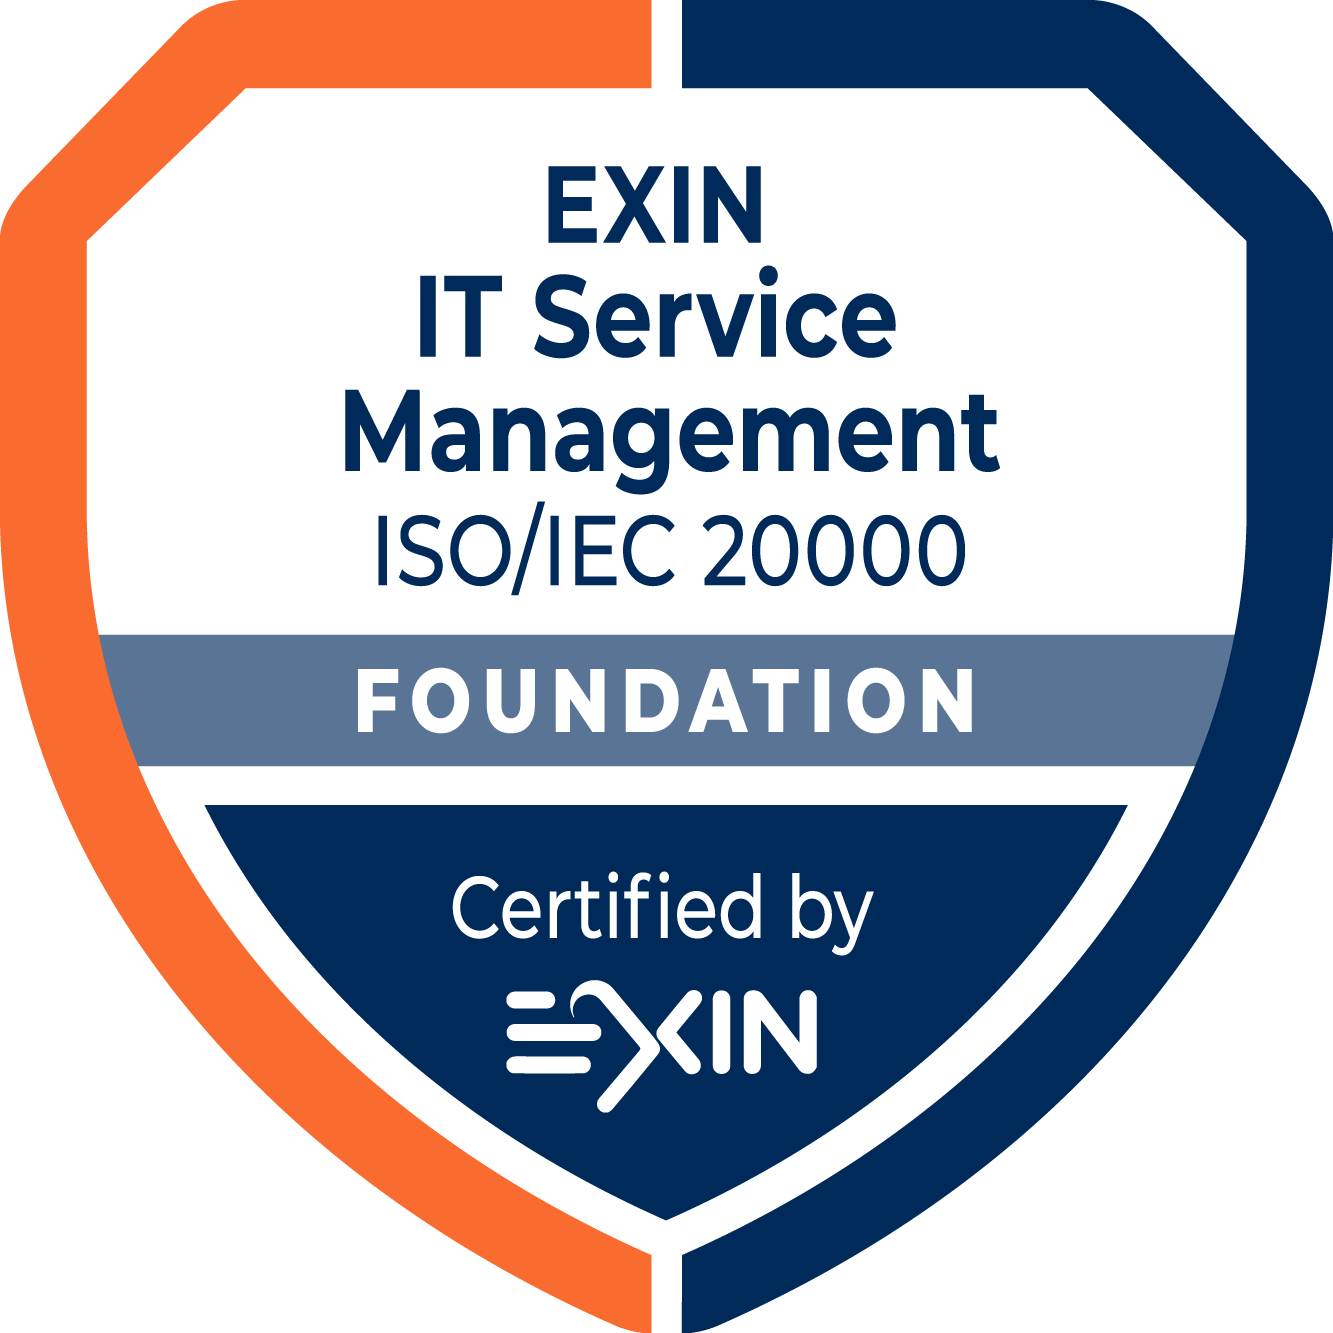 IT Service Management Foundation based on ISO IEC 20000